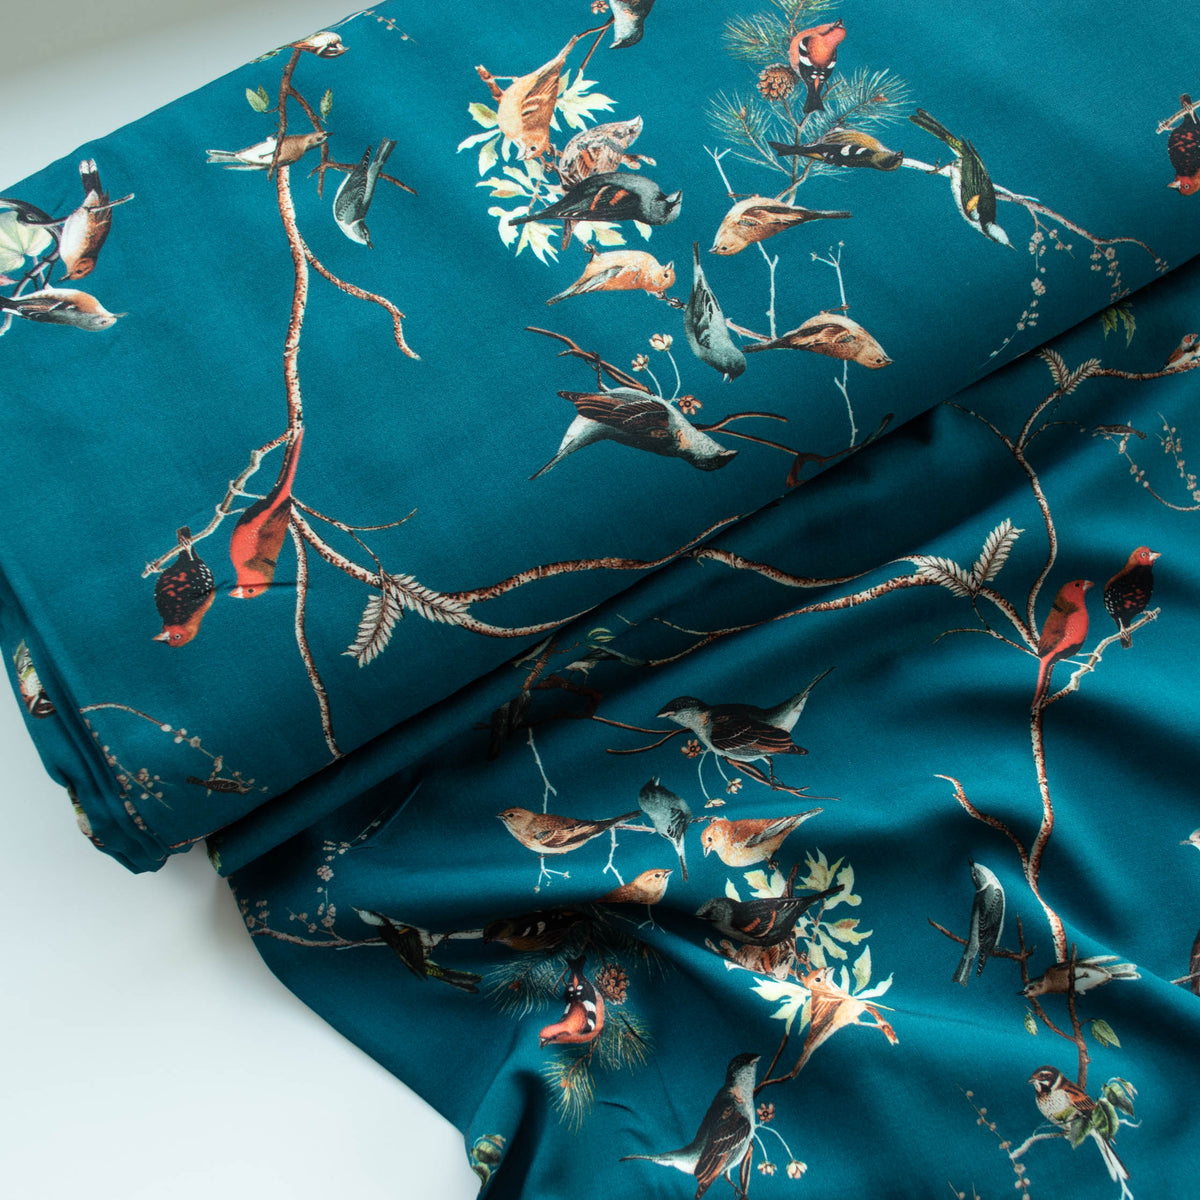 Lady McElroy - Viscose Challis Lawn - Evening Roost - Teal - MaaiDesign